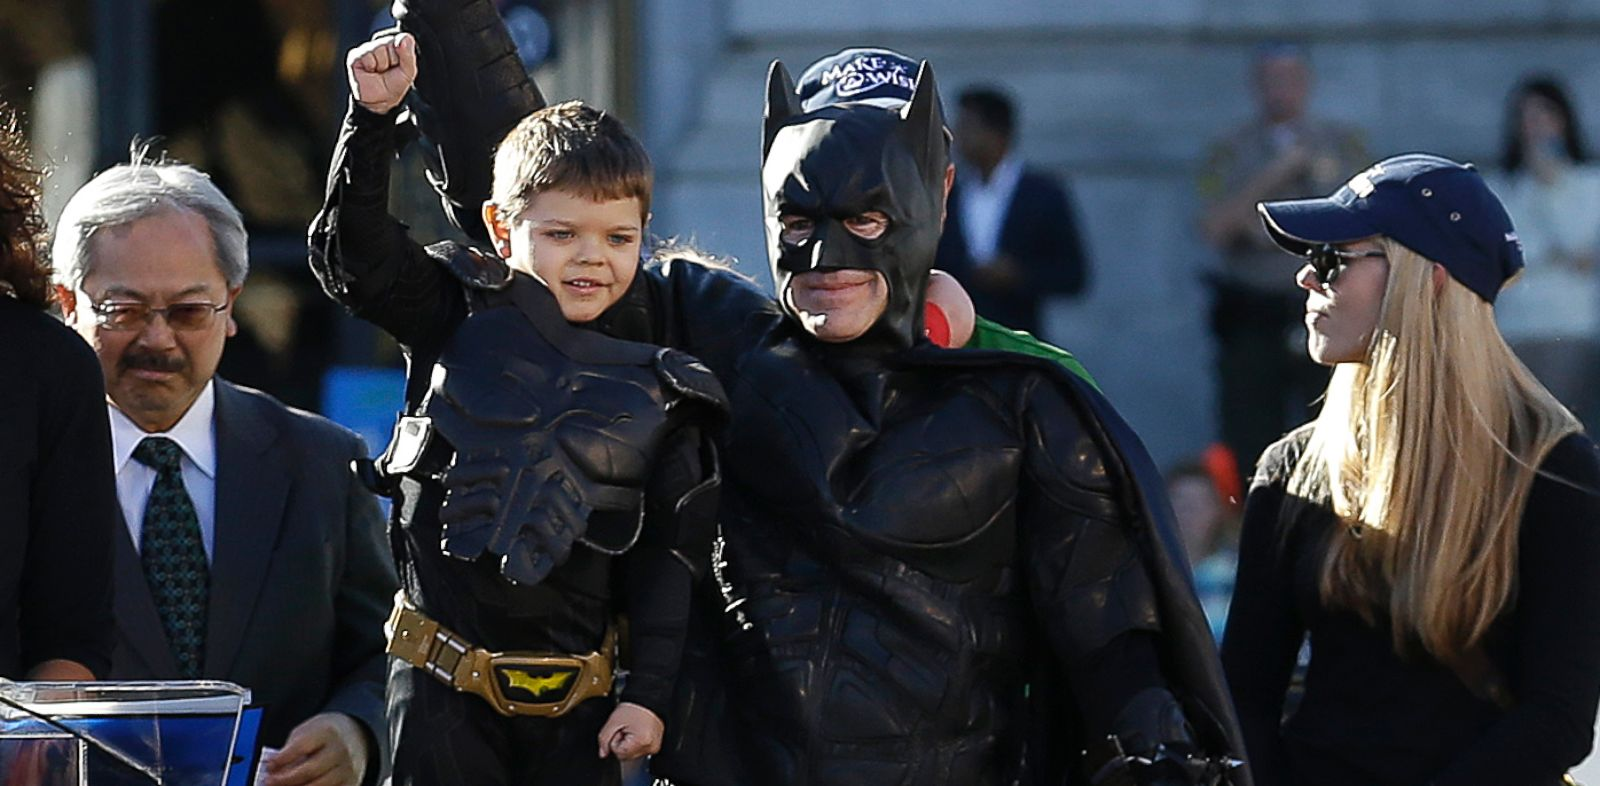 PHOTO: Miles Scott, dressed as Batkid, second from left, raises his arm next to Batman at a rally outside of City Hall with Mayor Ed Lee, left, and his mother Natalie Scott in San Francisco, Nov. 15, 2013.